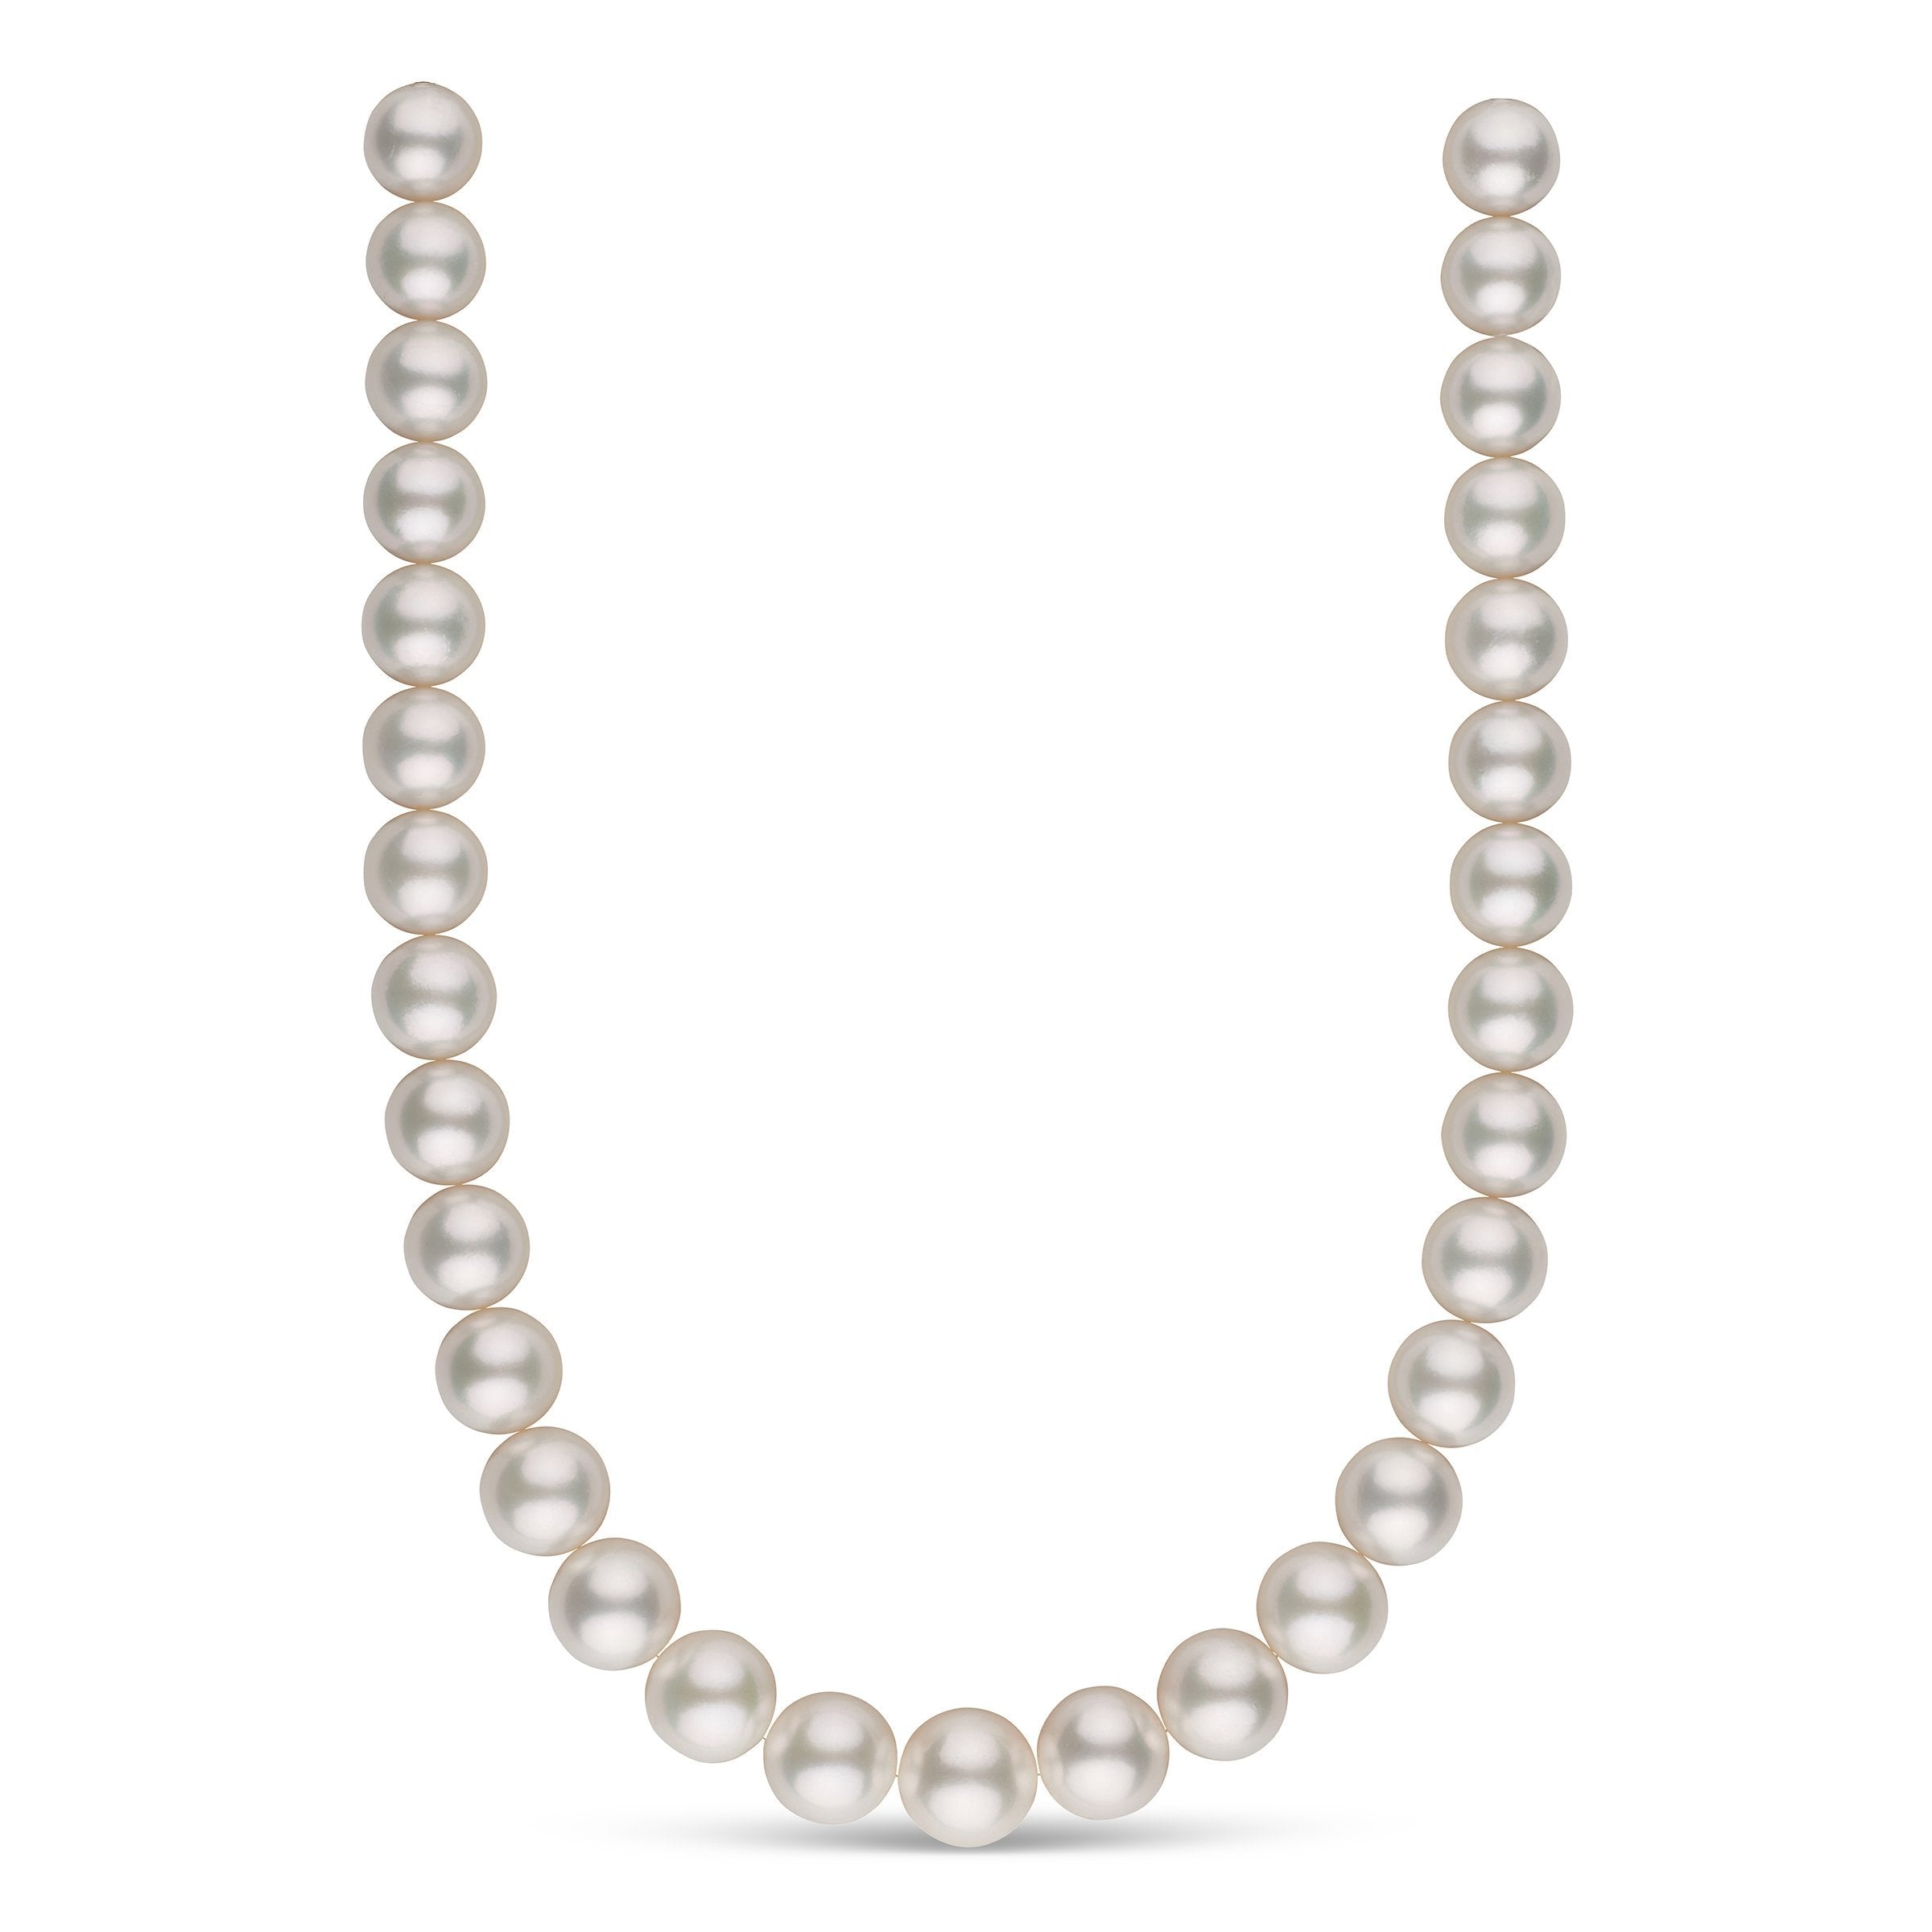 13.0-15.0 mm AAA White South Sea Round Pearl Necklace